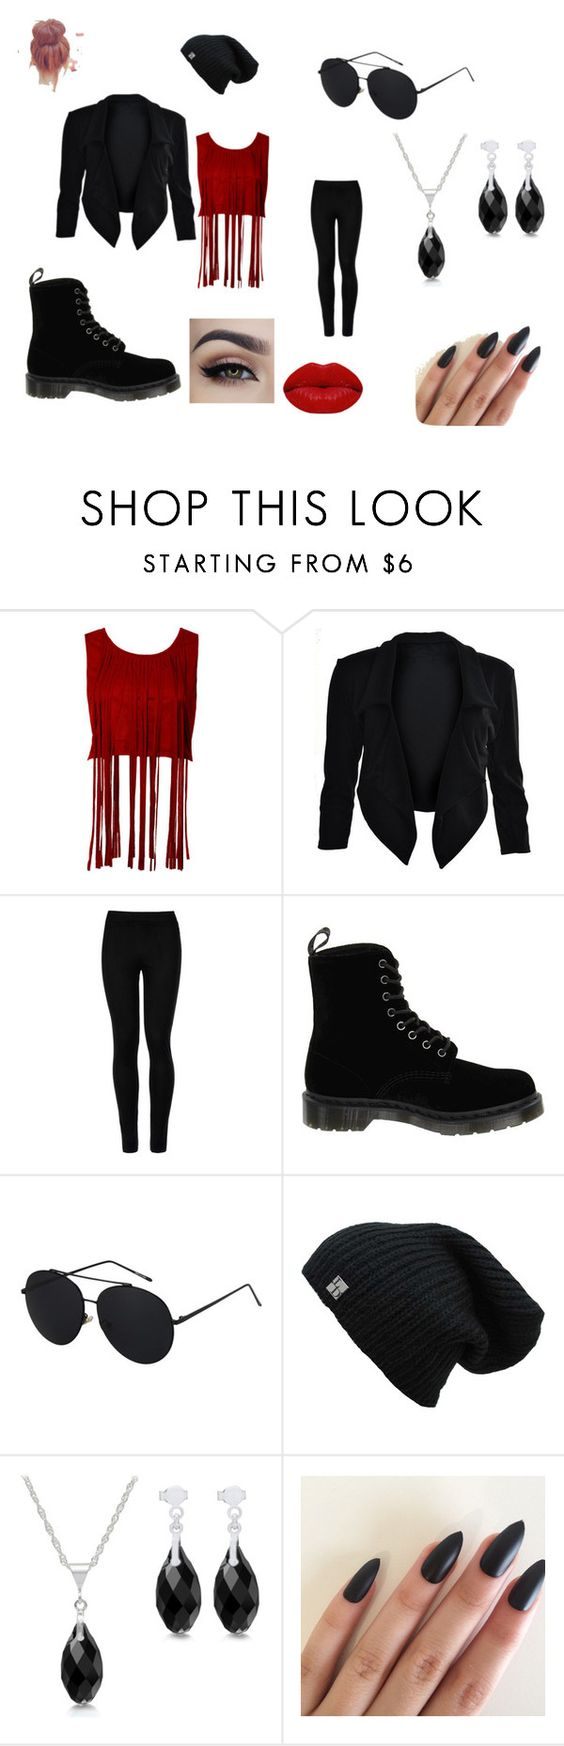 """Untitled #22"" by kristen-cooley on Polyvore featuring Wolford, Dr. Martens and Winky Lux"